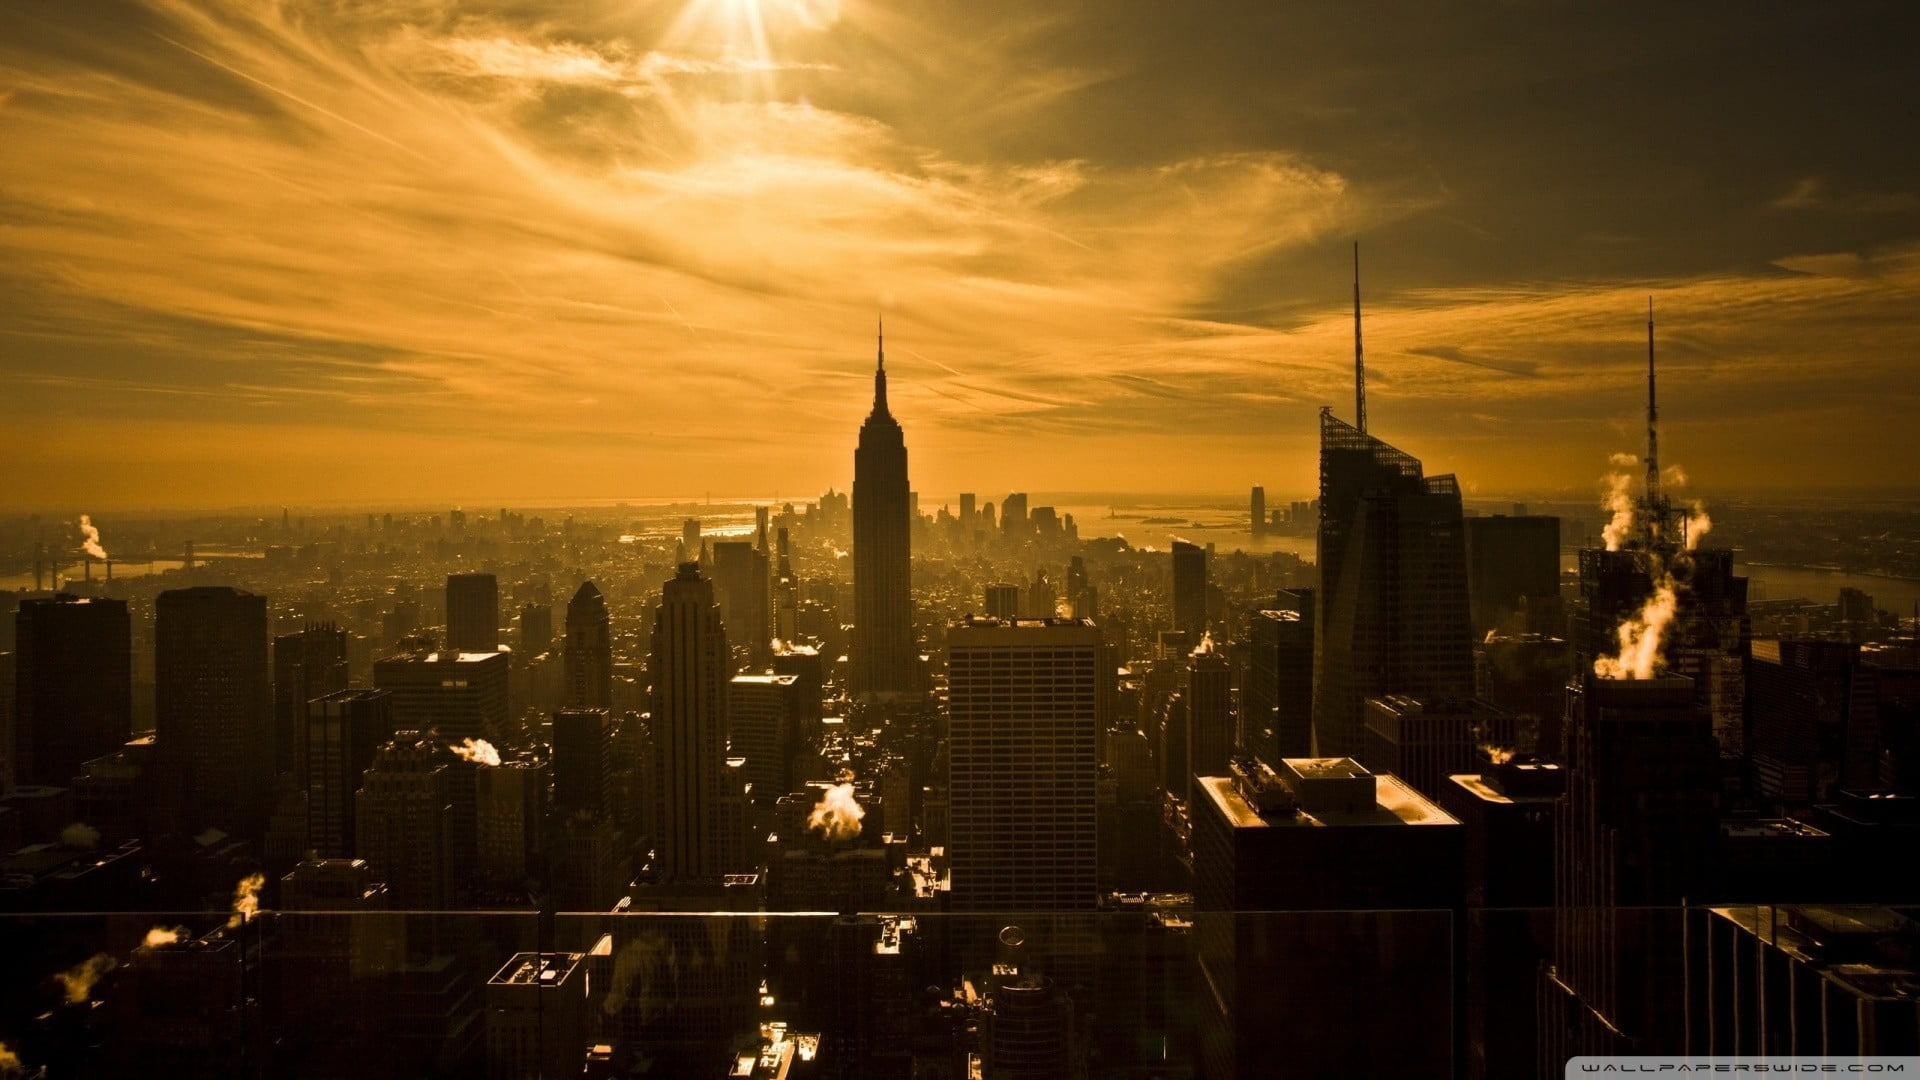 Dark New York City Wallpaper